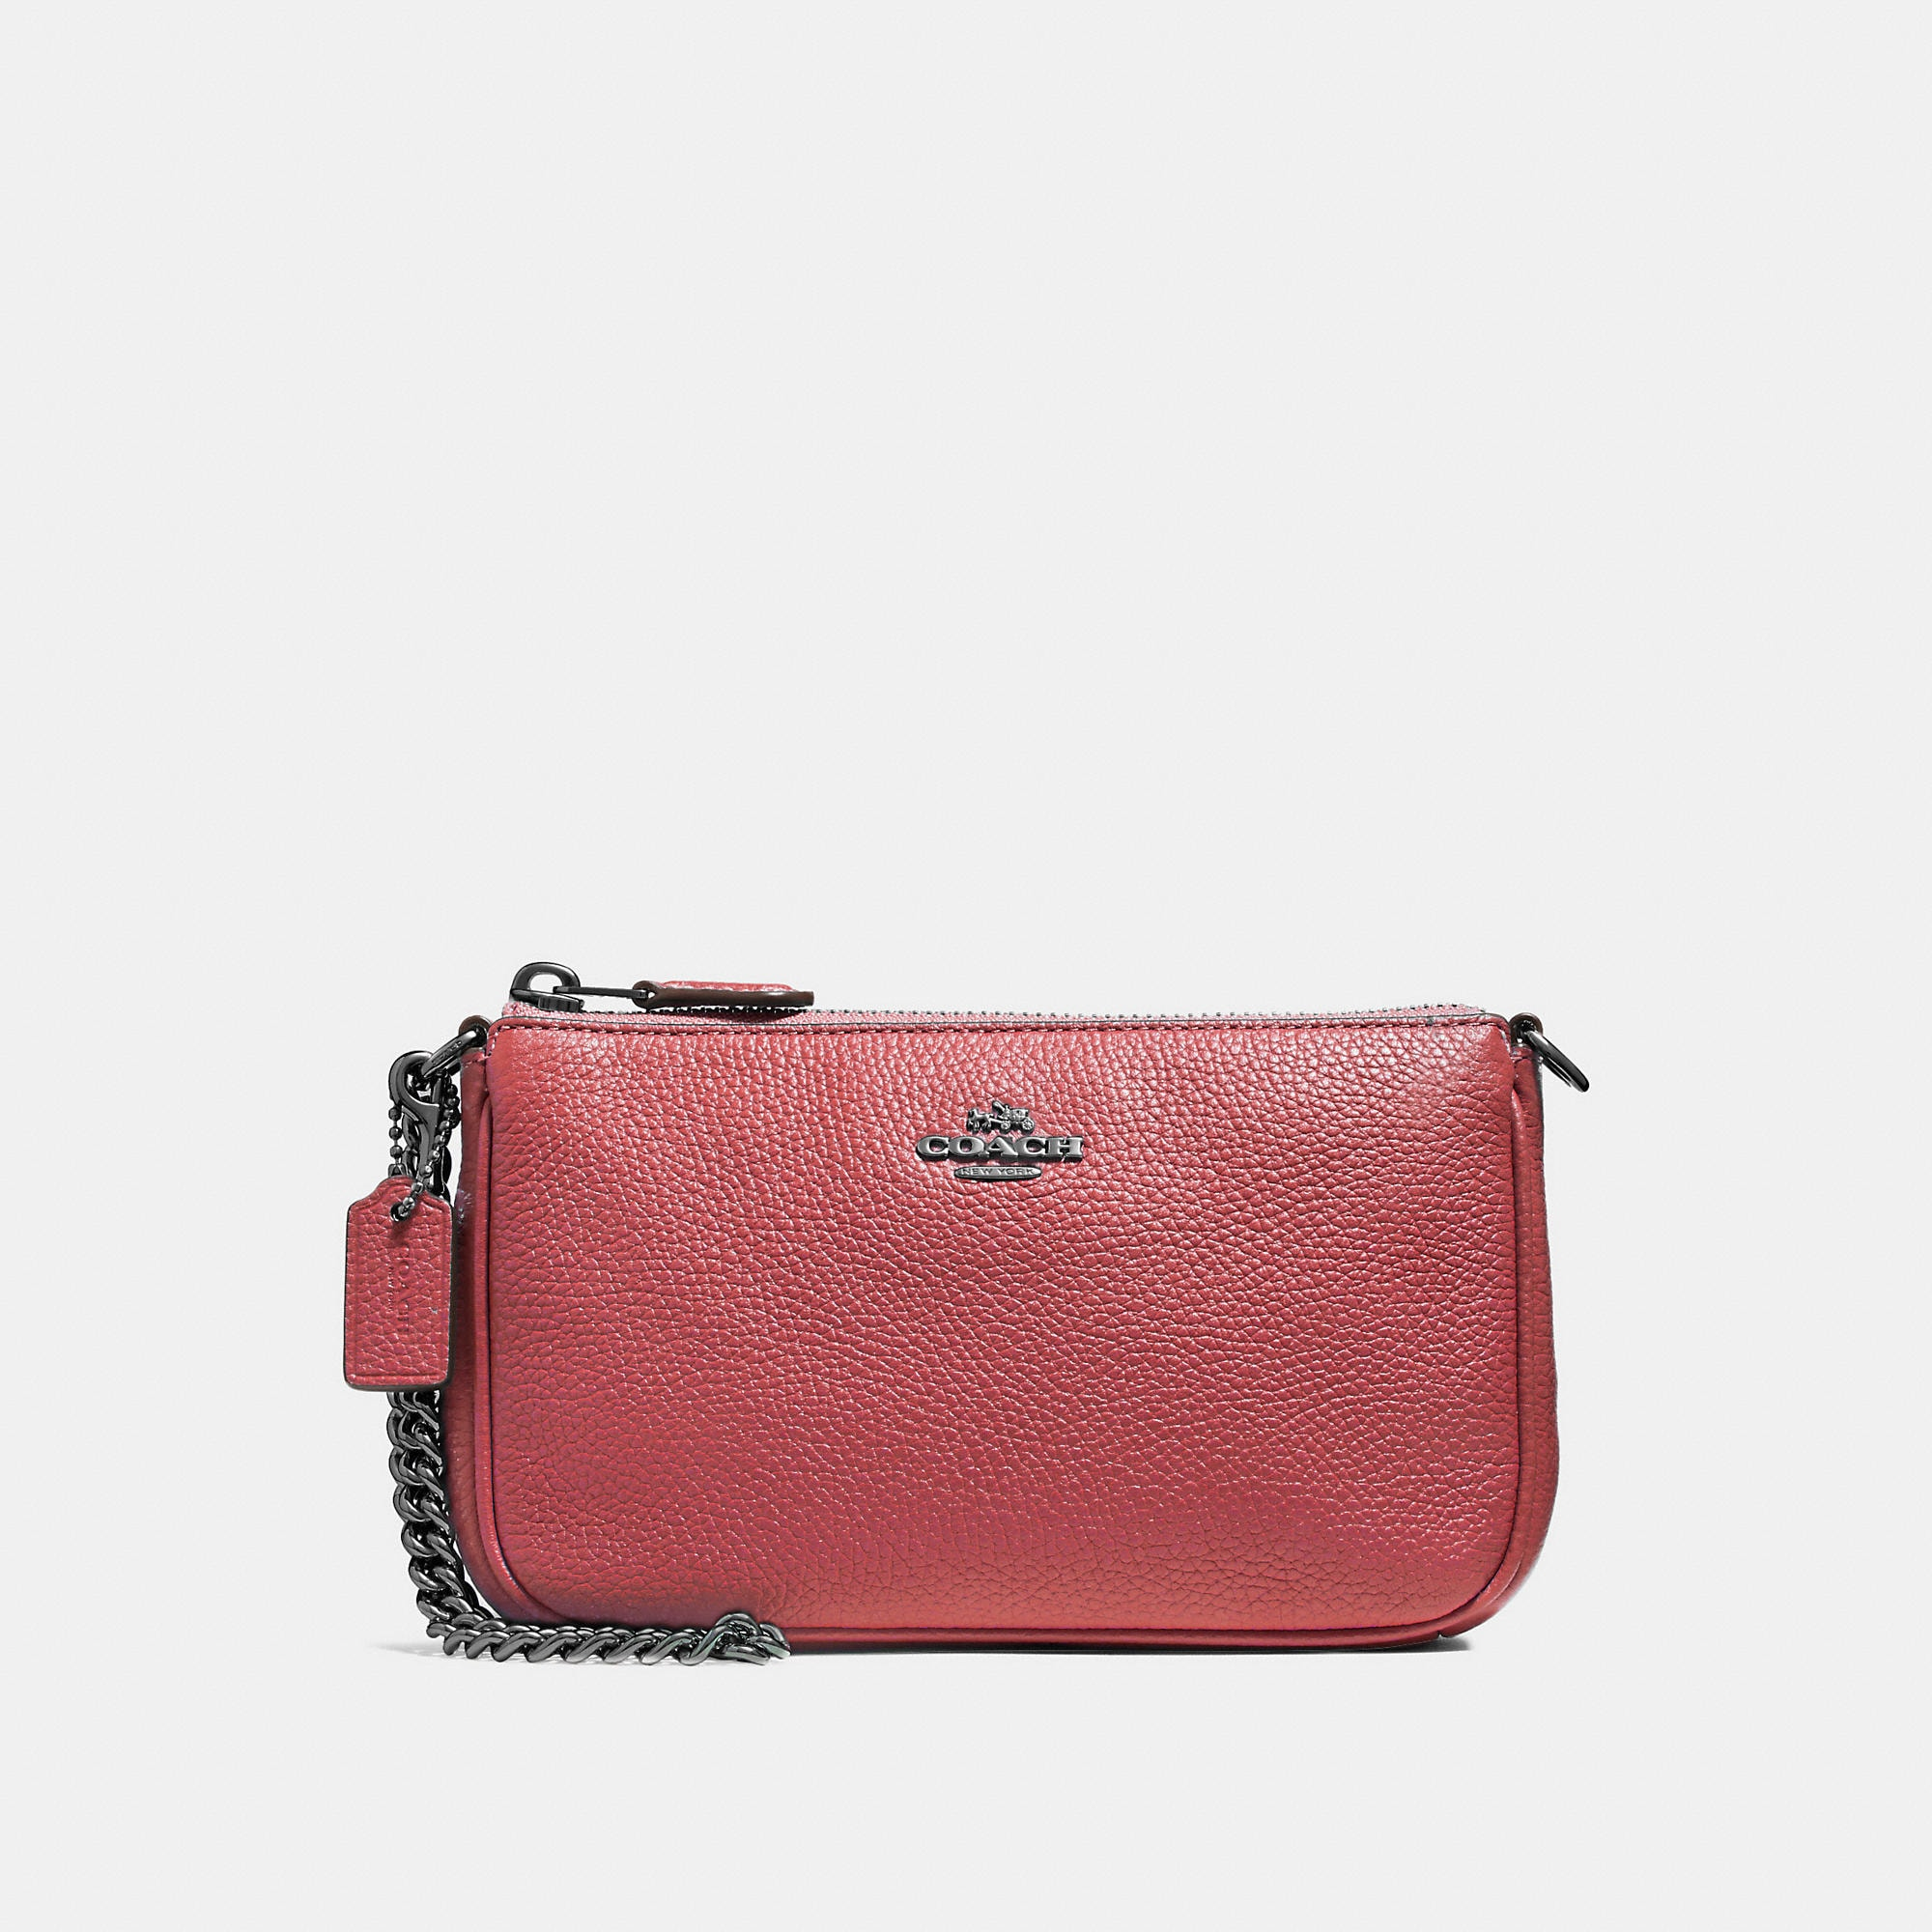 9938cb9d7b04 ... ireland coach nolita wristlet 19 womens in washed red dark gunmetal  8232a 51f9f